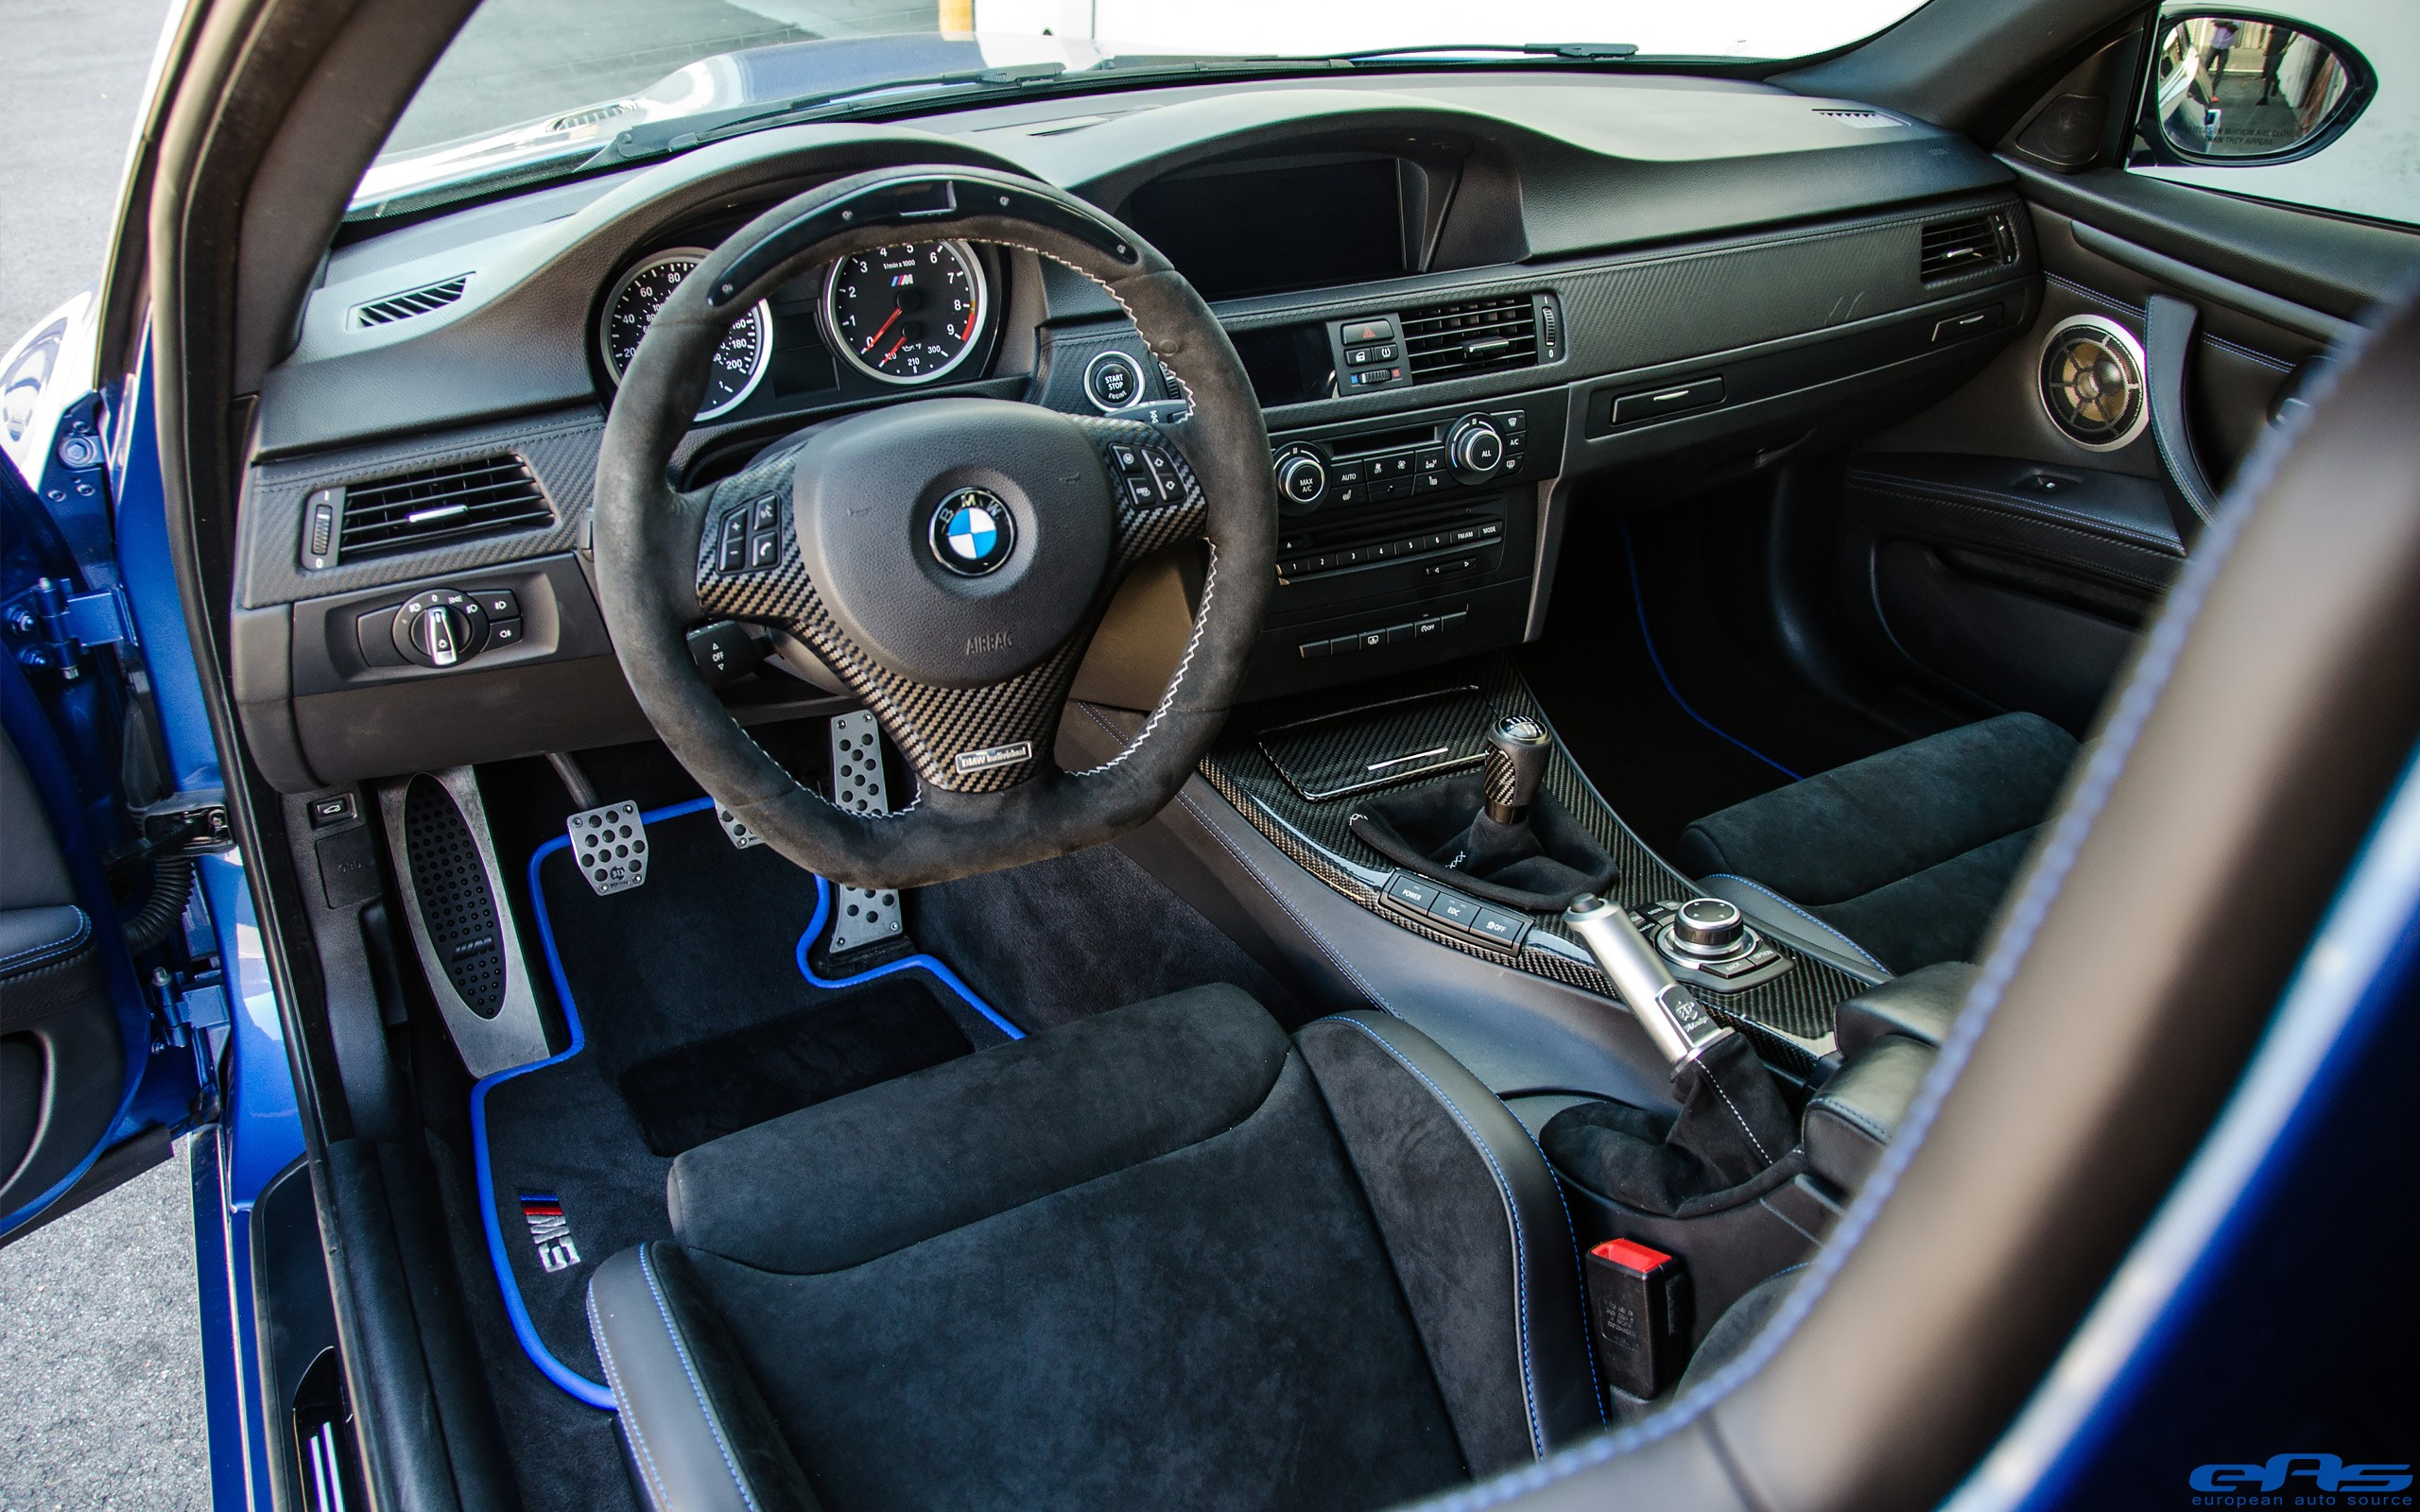 This One Sick Bmw E92 M3 Makes Us Think Twice Before Checking Out An M4 Autoevolution